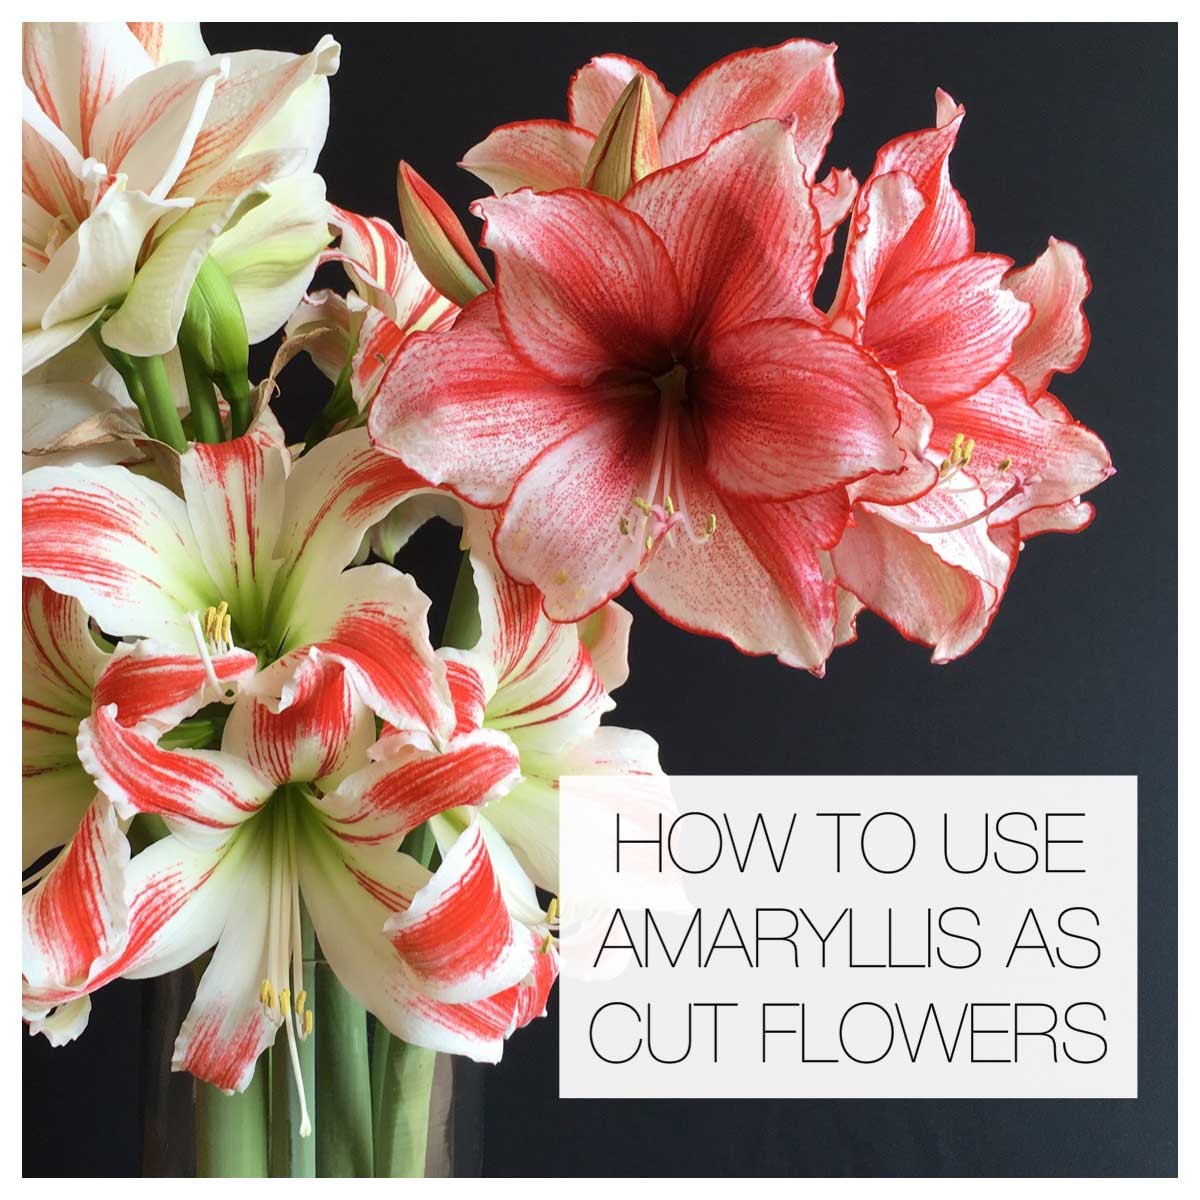 How to Use Amaryllis as Cut Flowers